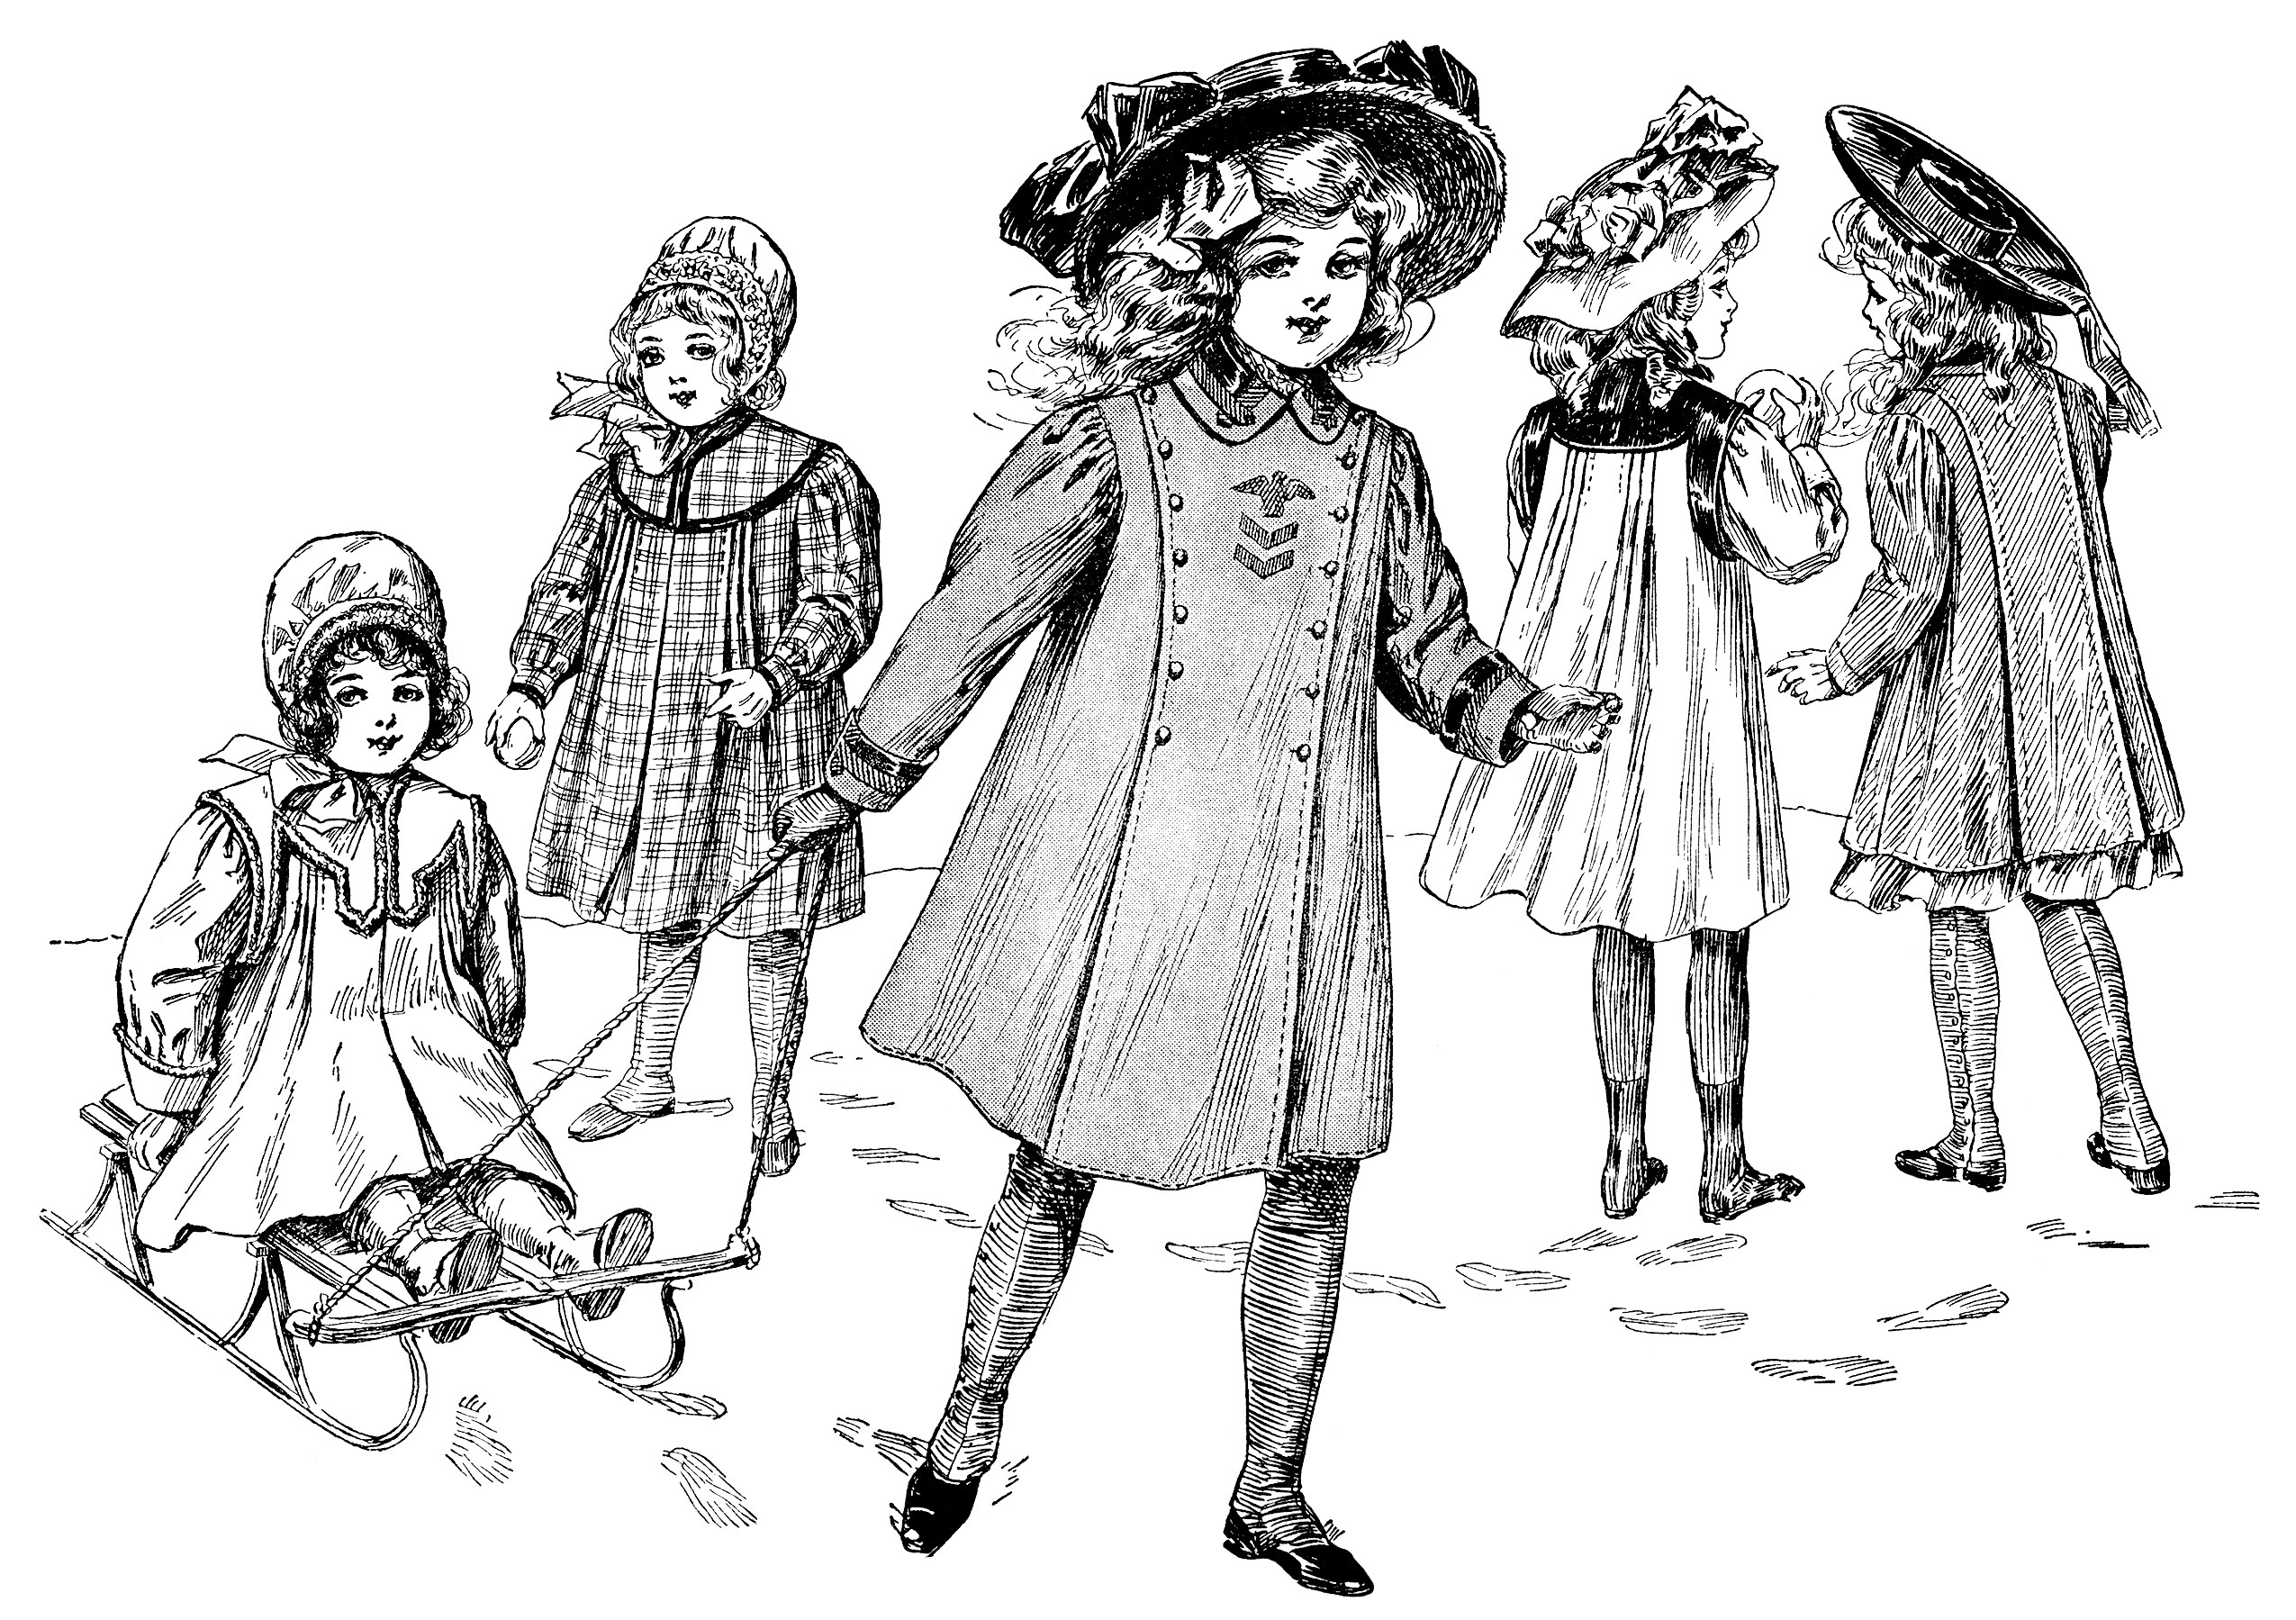 vintage children clip art, Edwardian girls fashion, free black and white clipart, playing in snow illustration, children outdoors printable